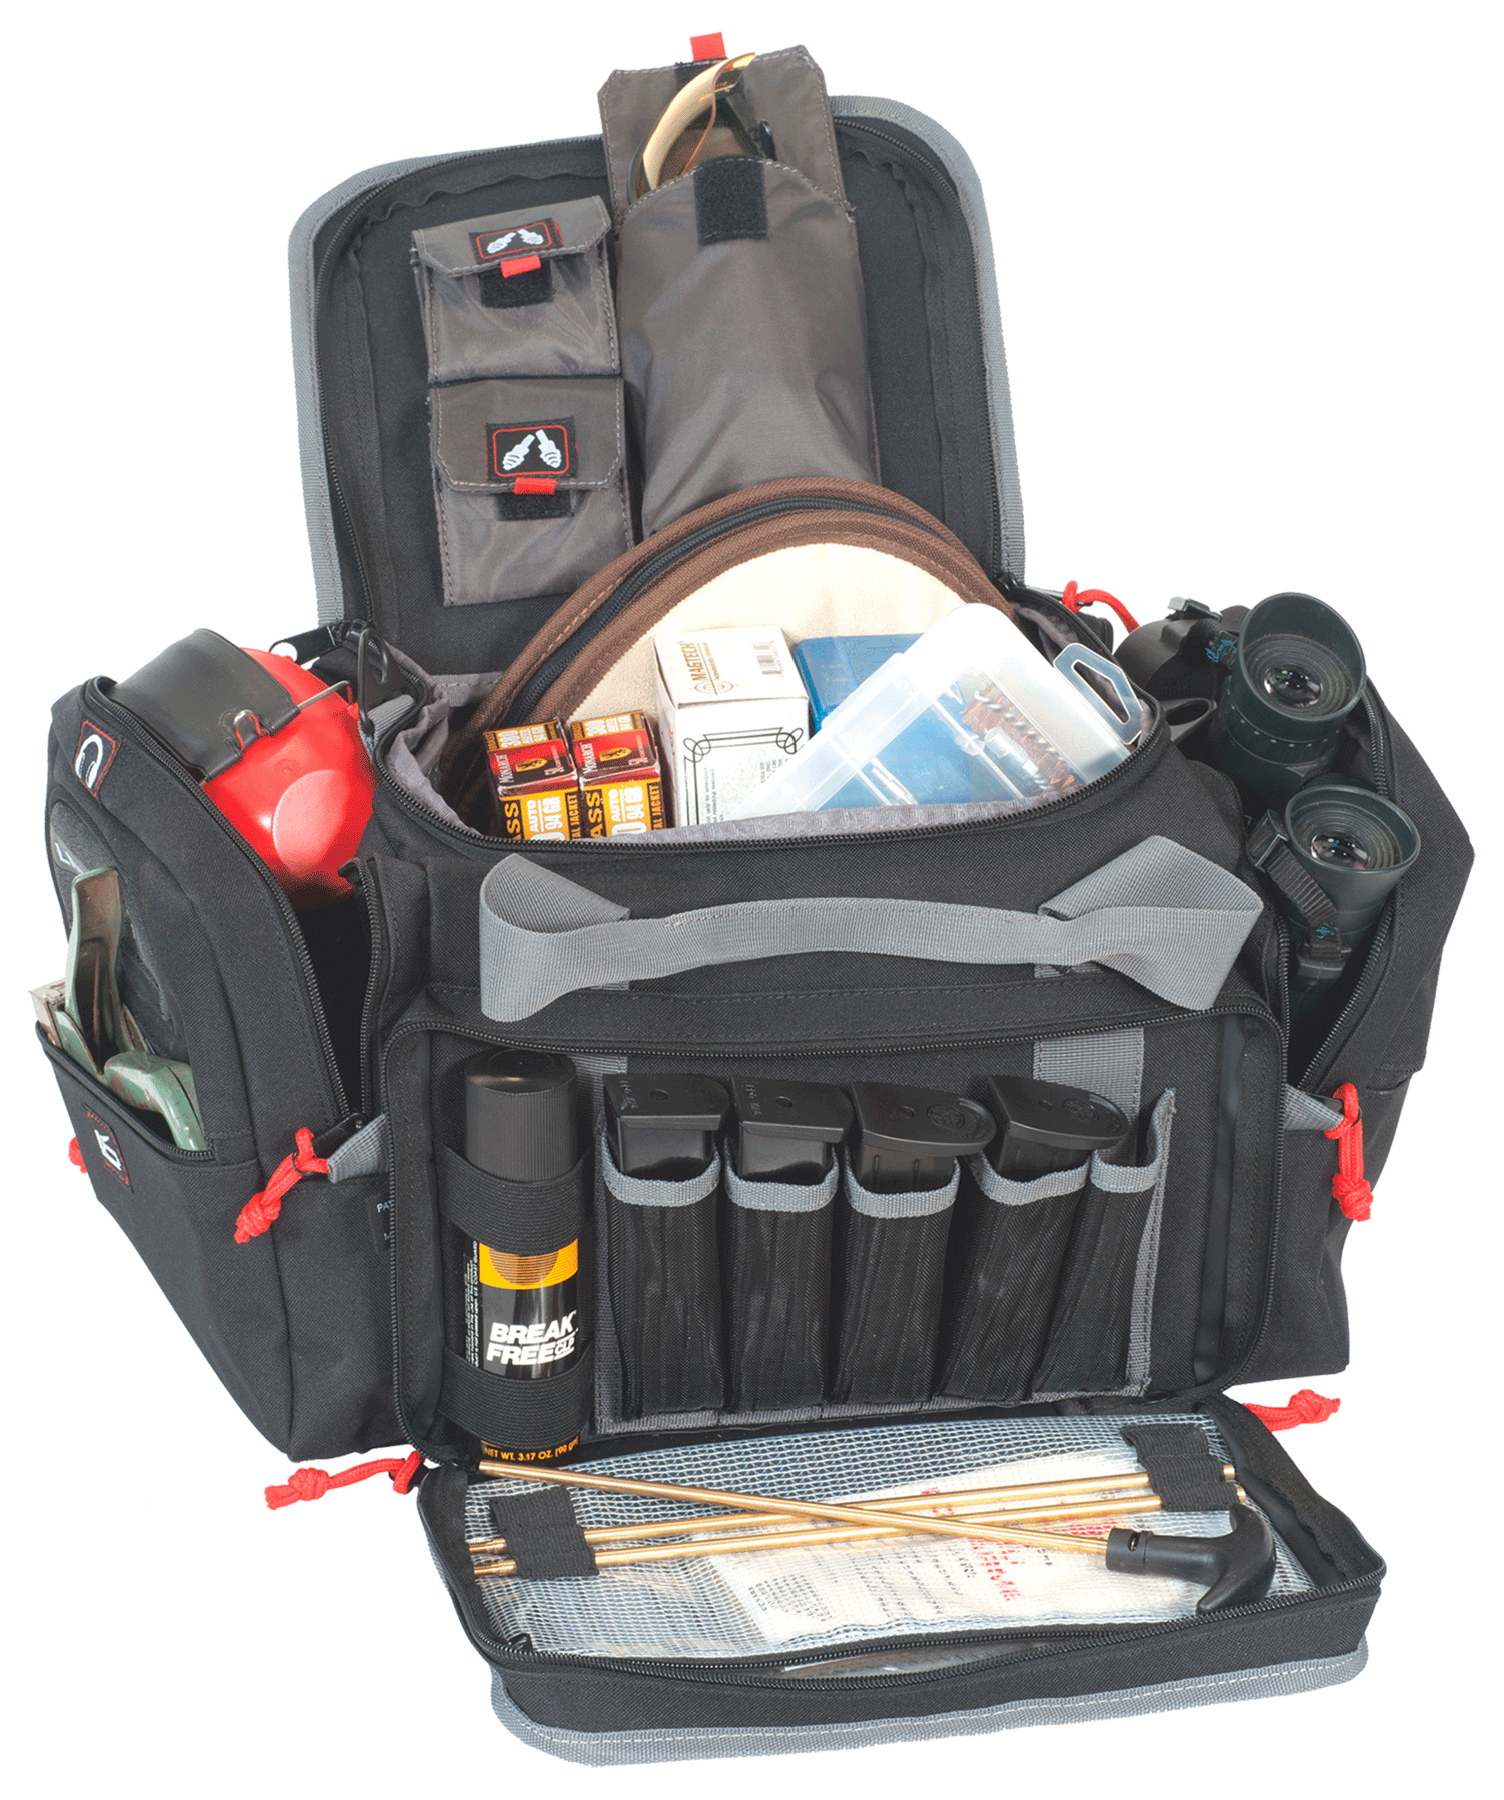 G•Outdoors Medium Range Bag Internal Organization System - Black